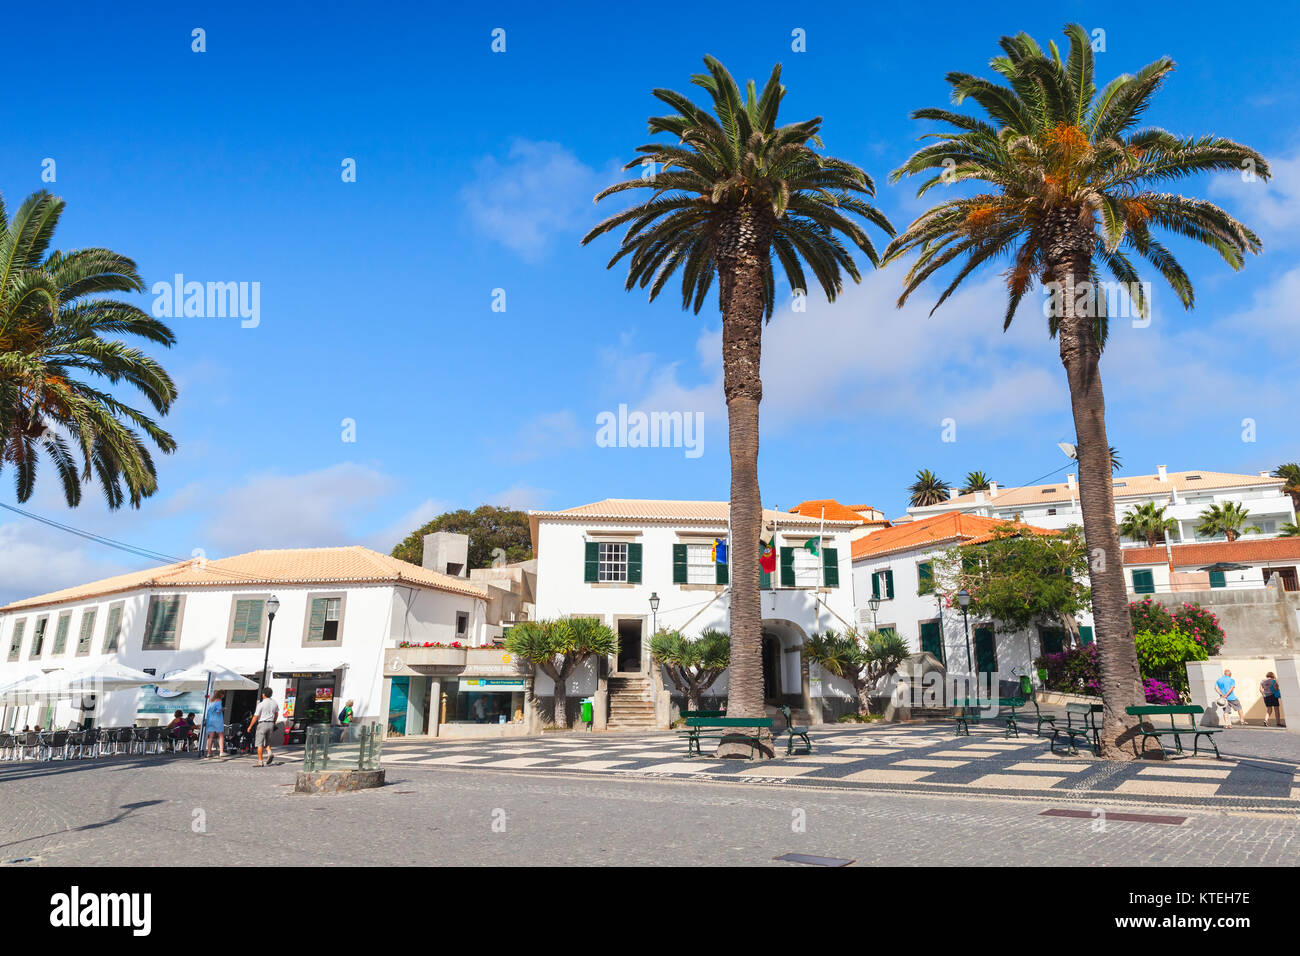 Vila Baleira, Portugal - August 18, 2017: Street view, central square of Vila Baleira the only city and the capital - Stock Image